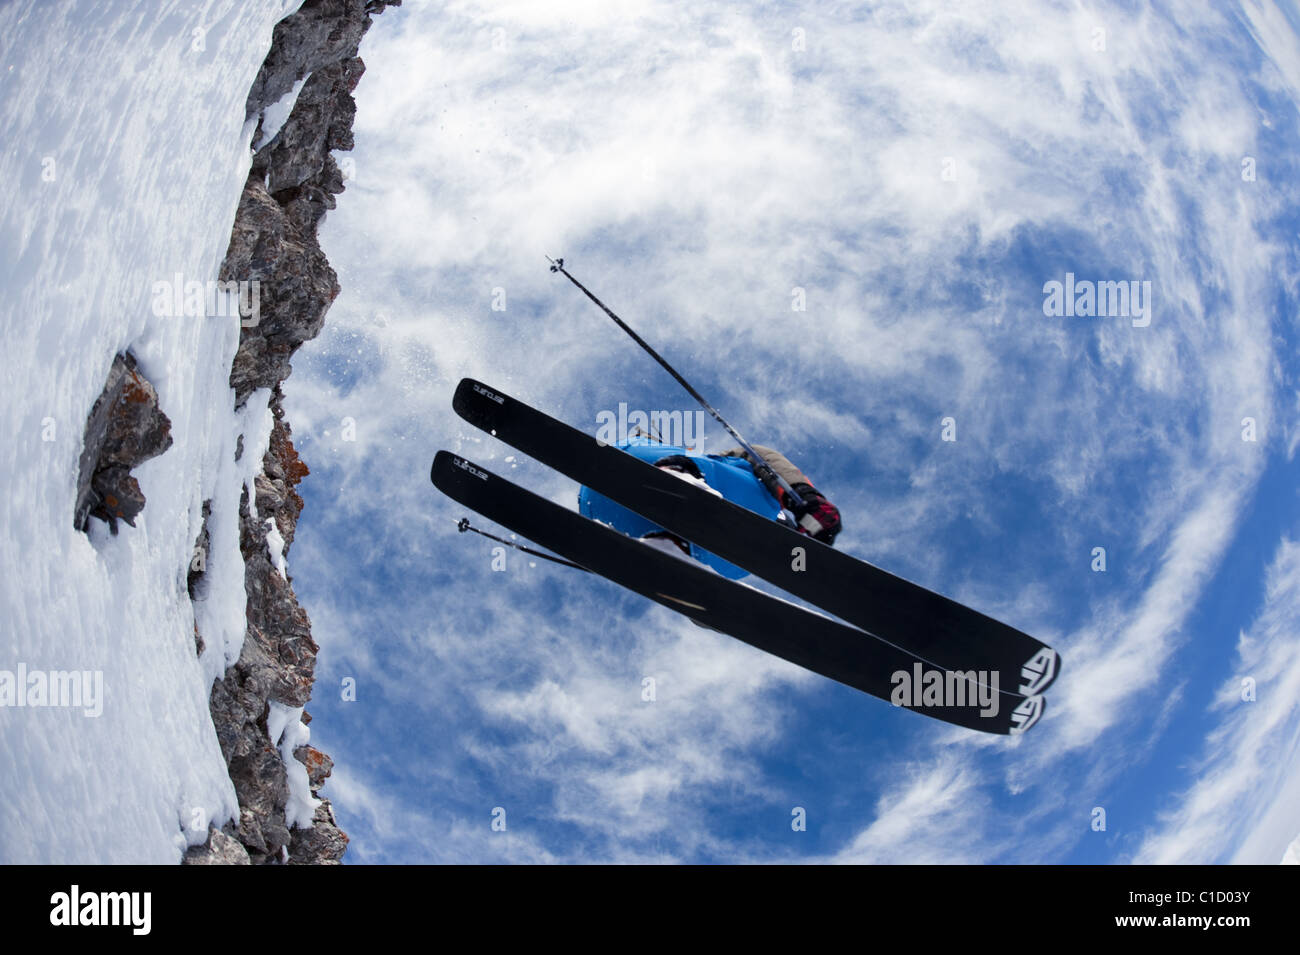 A free skier dropping down a cliff in Argentera, Italy. The skier is flying above the photographer. - Stock Image